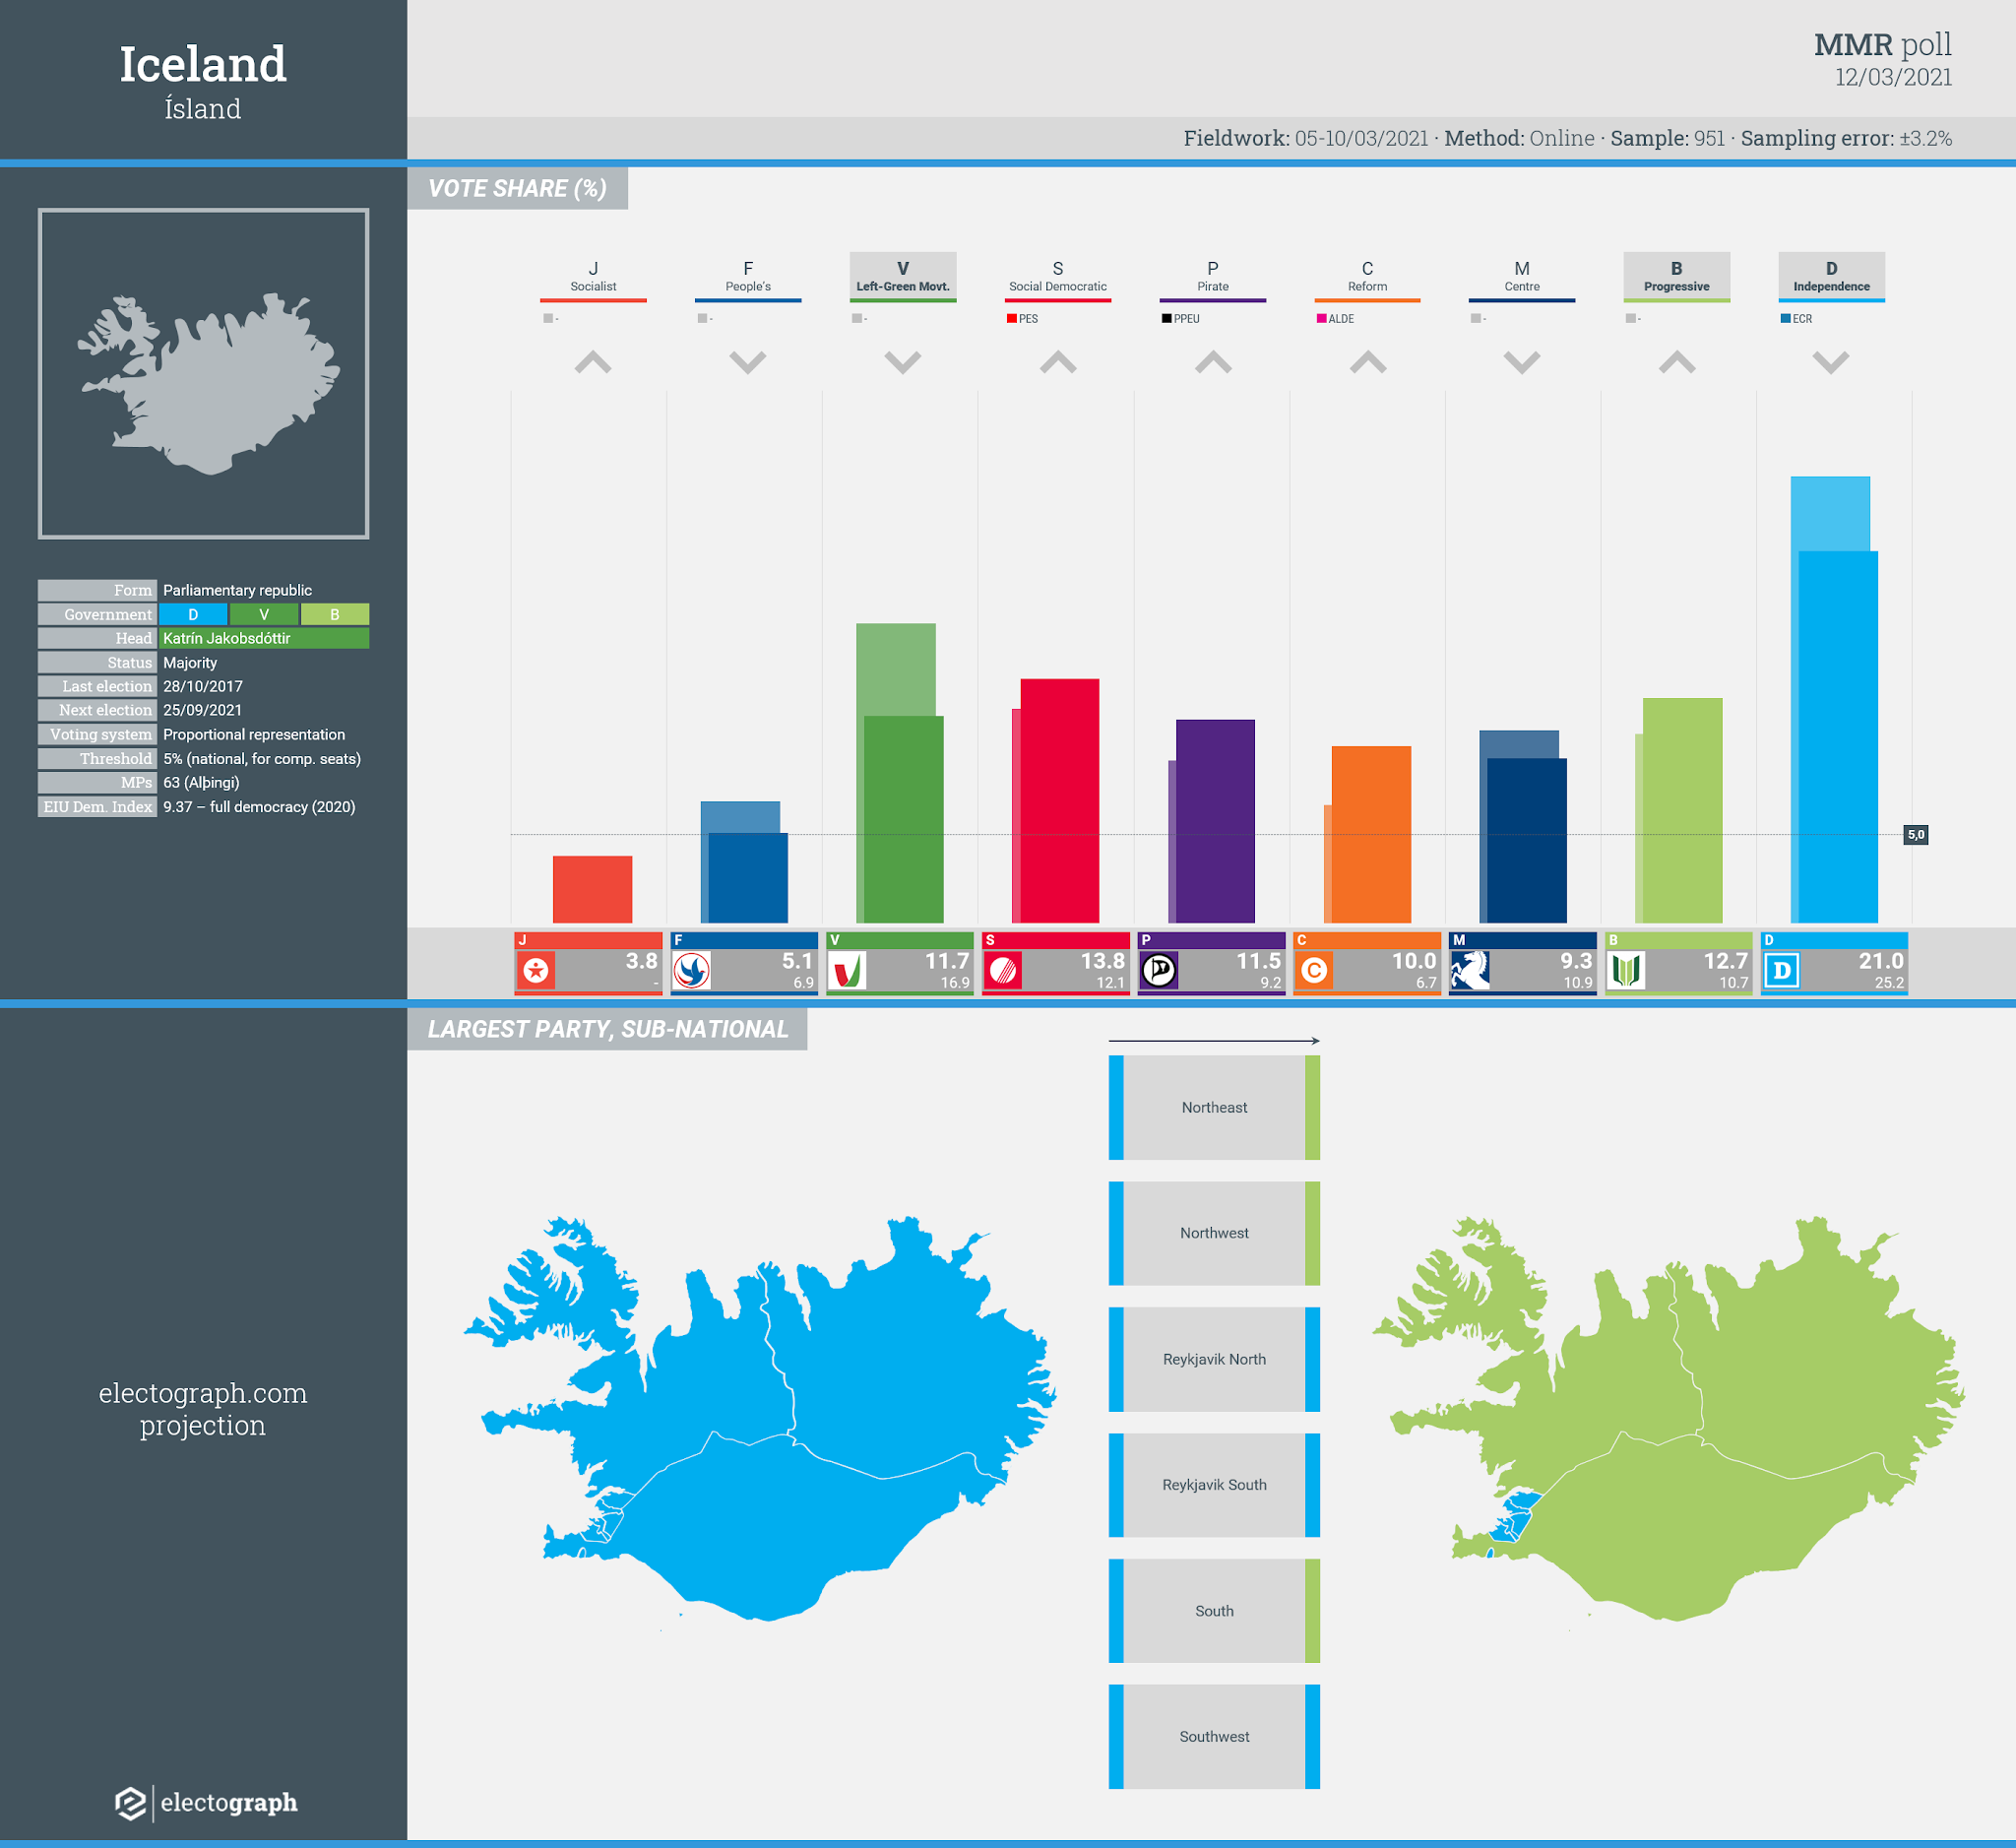 ICELAND: MMR poll chart, 12 March 2021